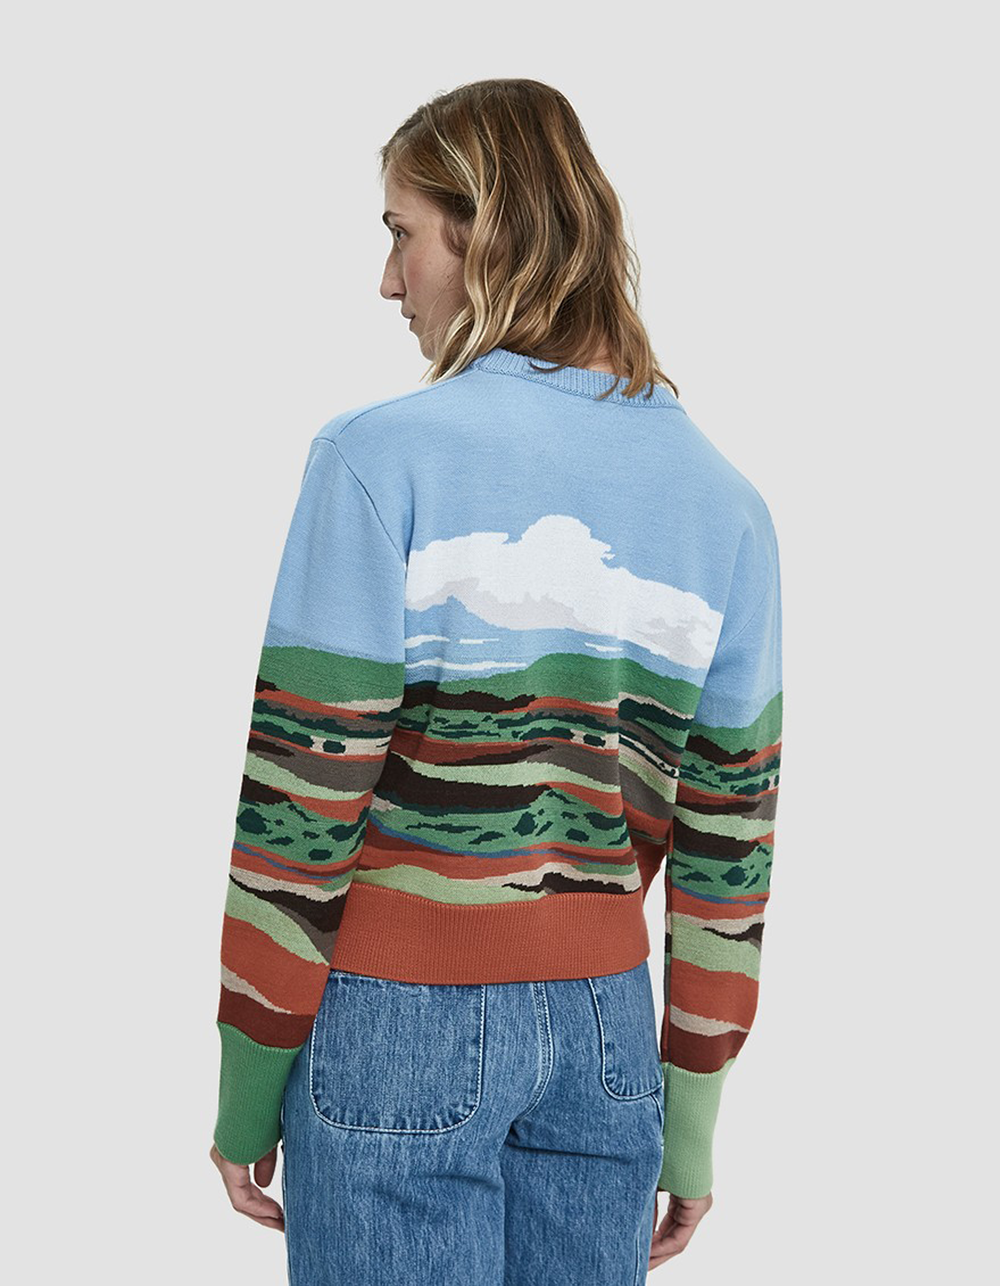 12-landscape-sweater.png